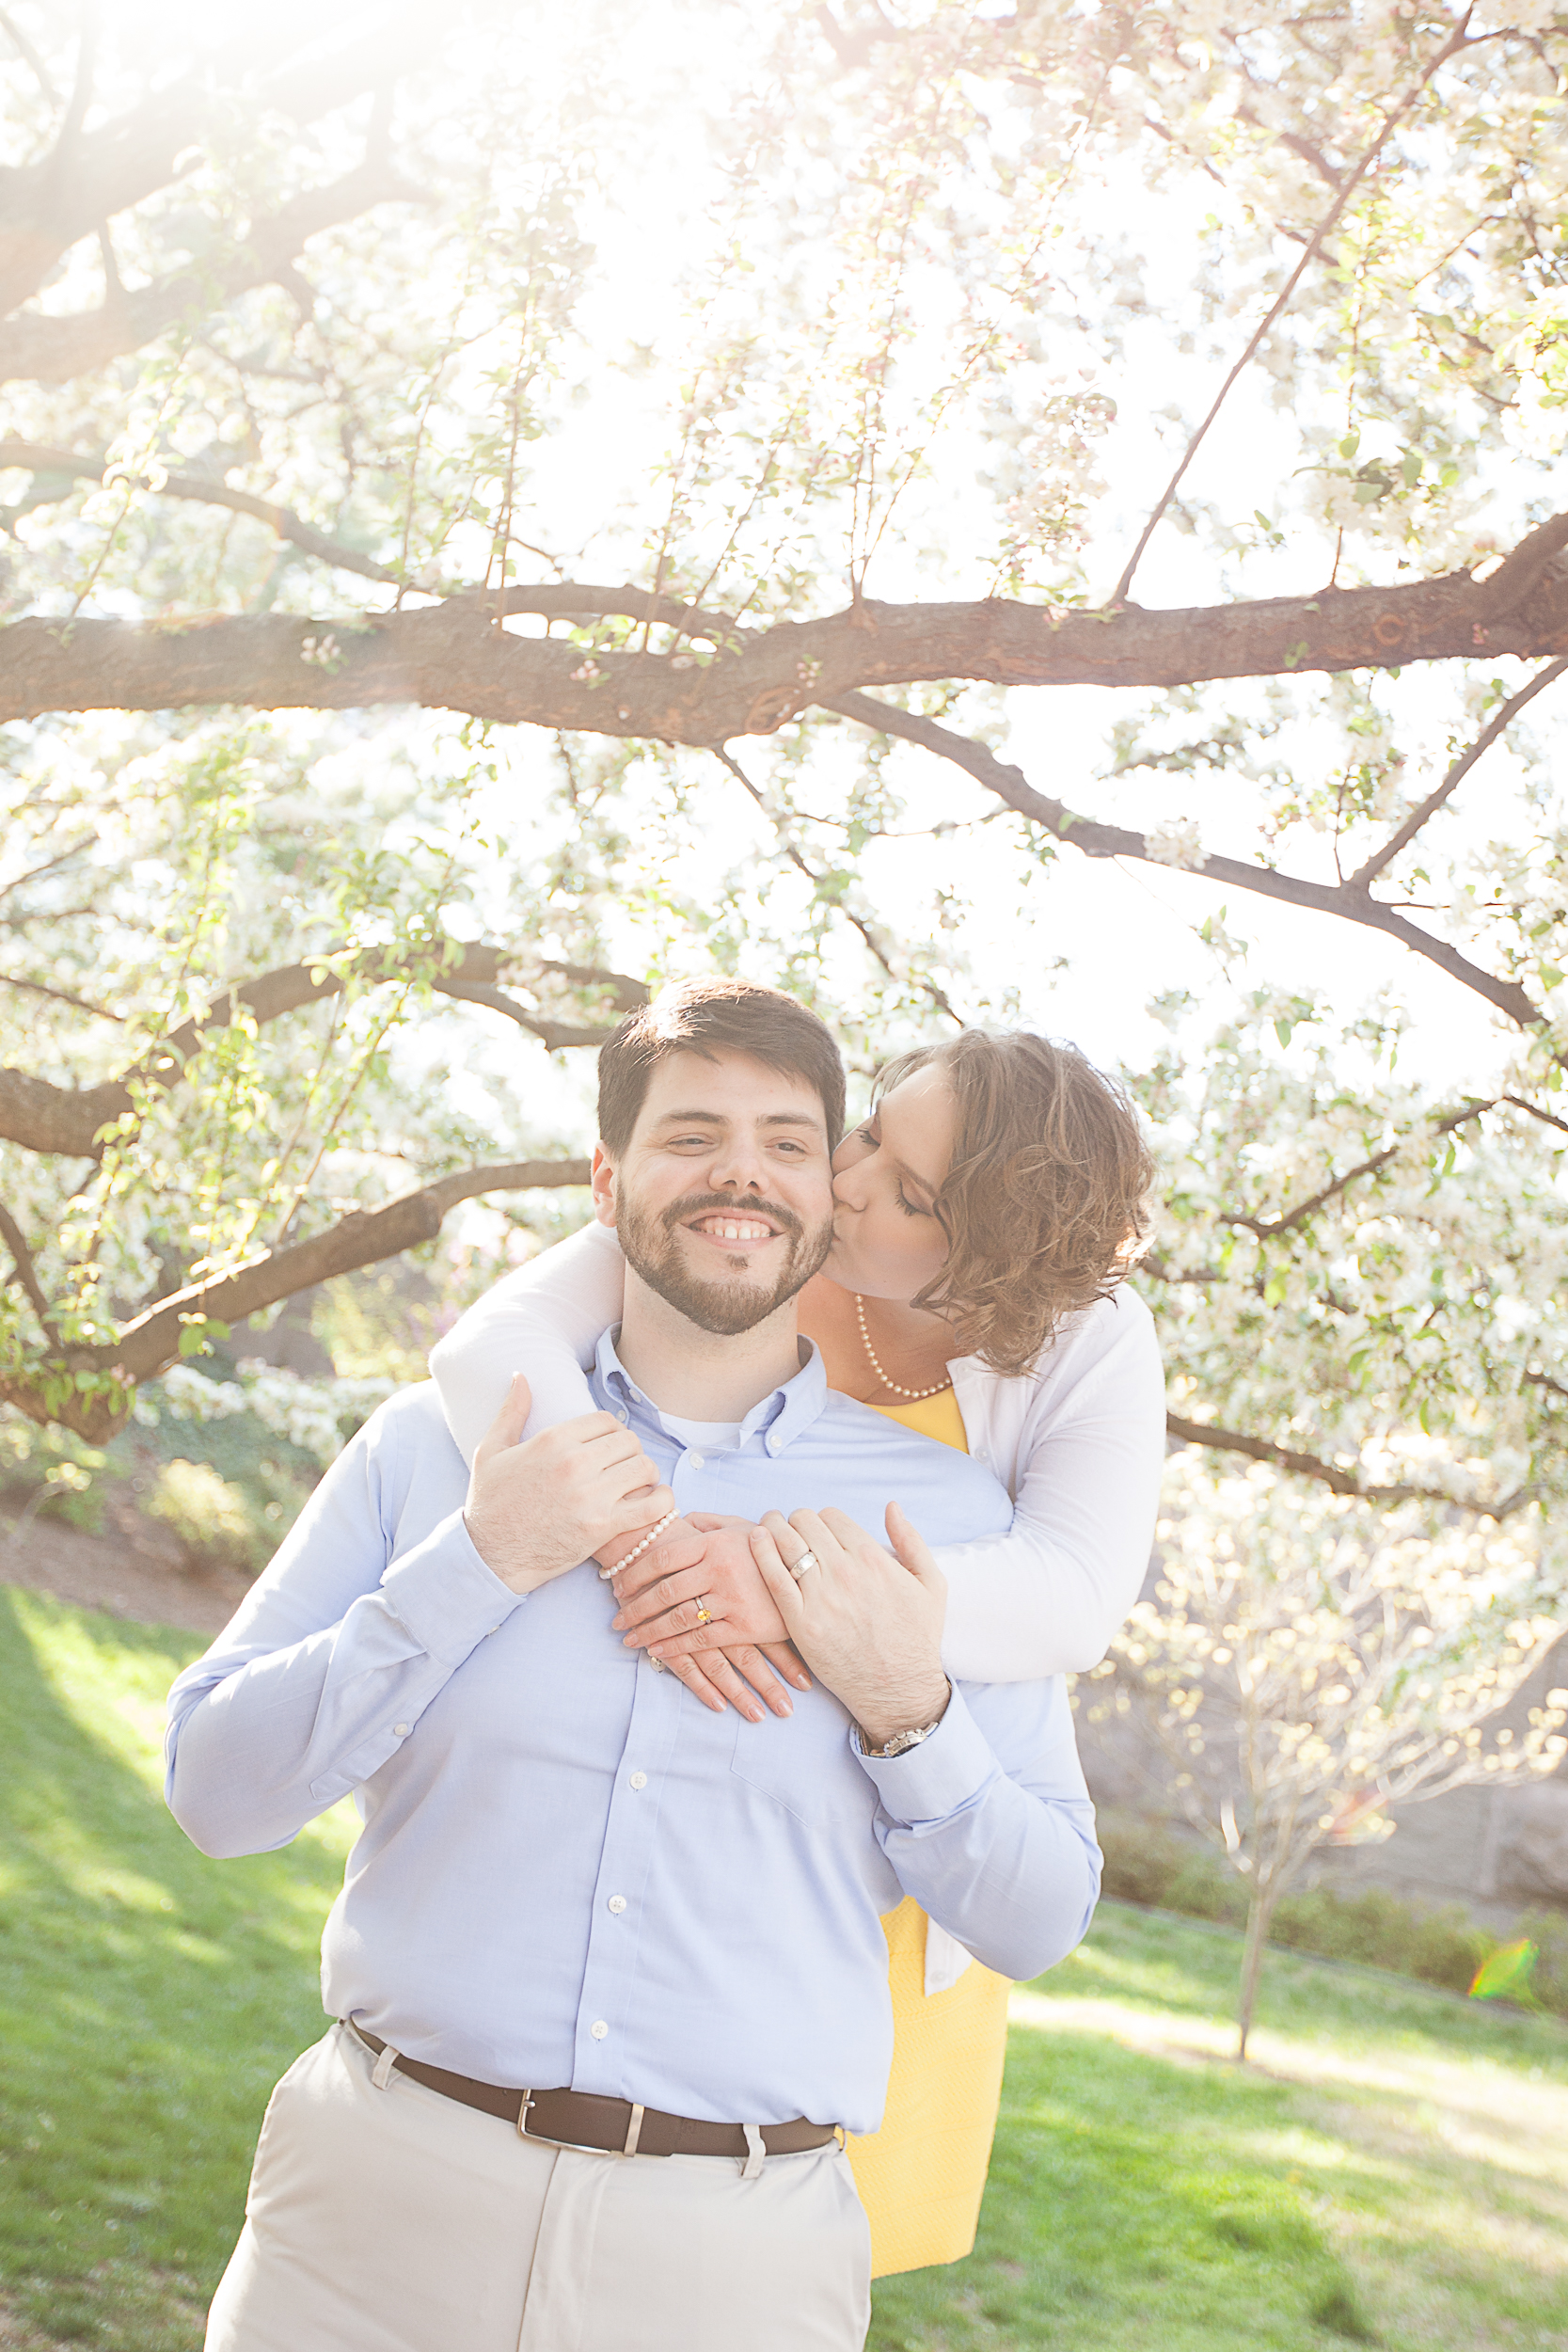 Kathryn-Stephen-Engagement-Kim-Pham-Clark-Photography-14.jpg